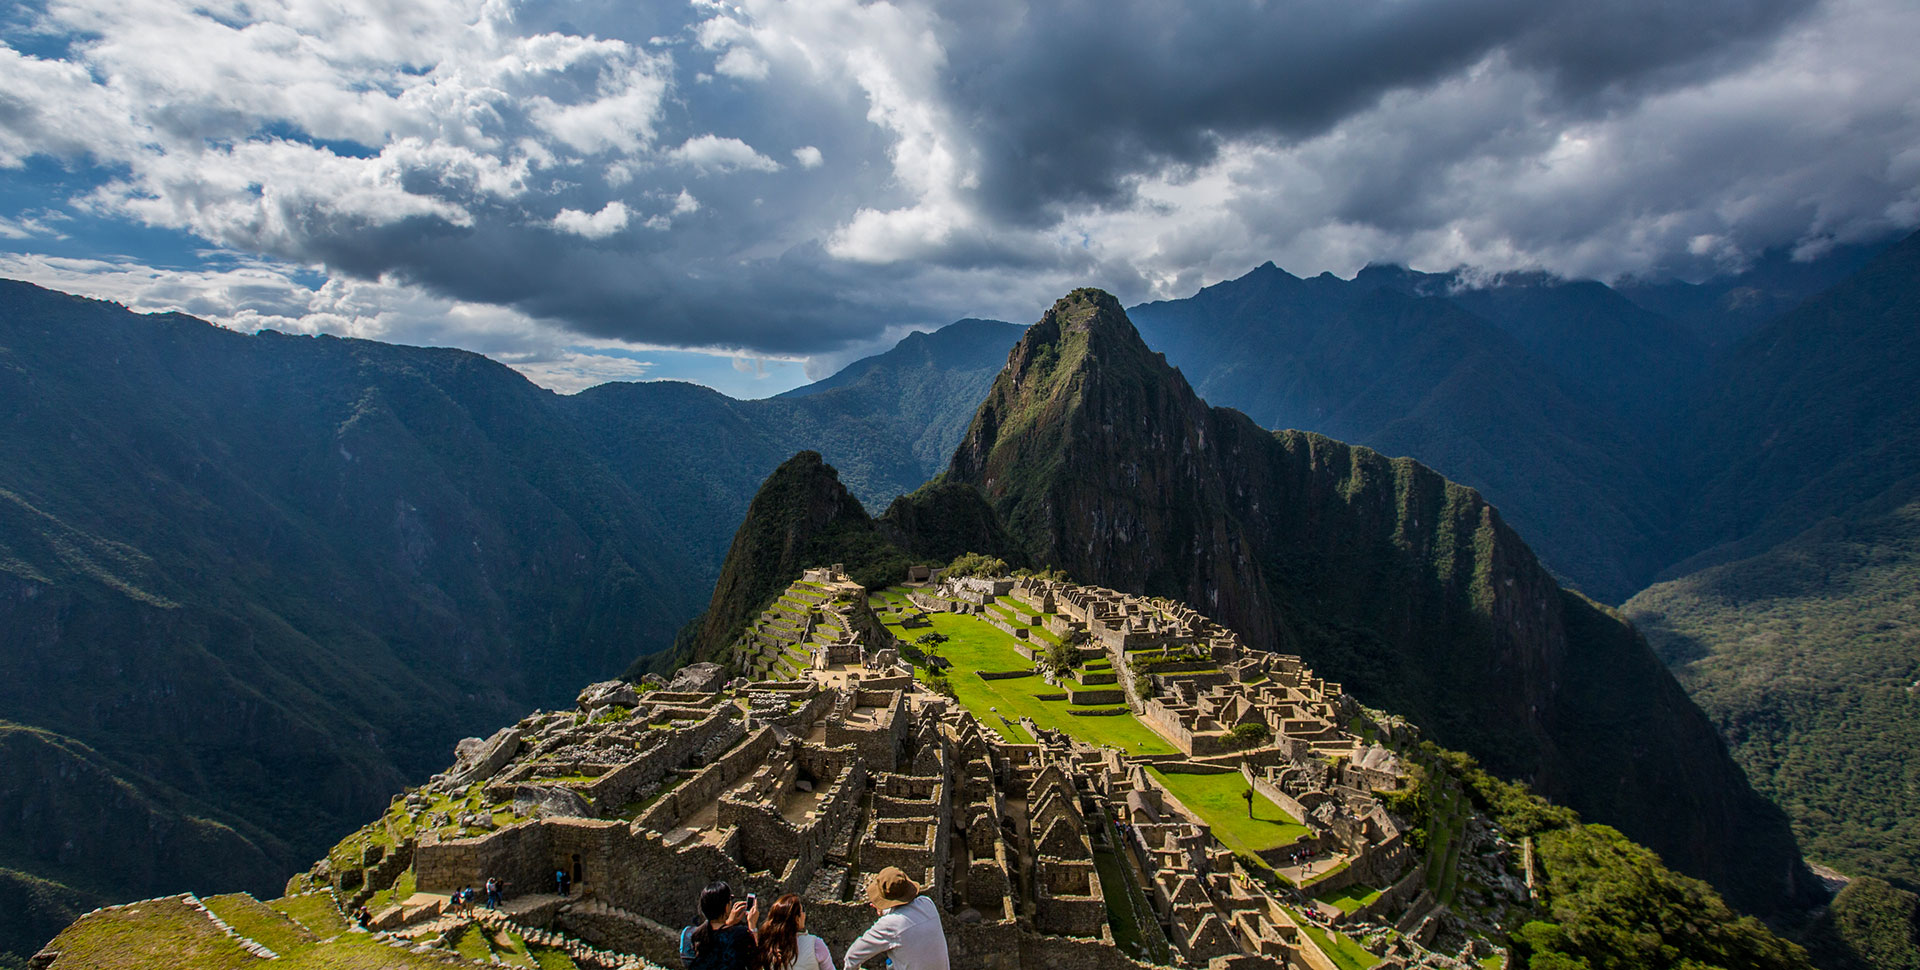 Huayna Picchu Mountain and Machu Picchu Citadel from the distance